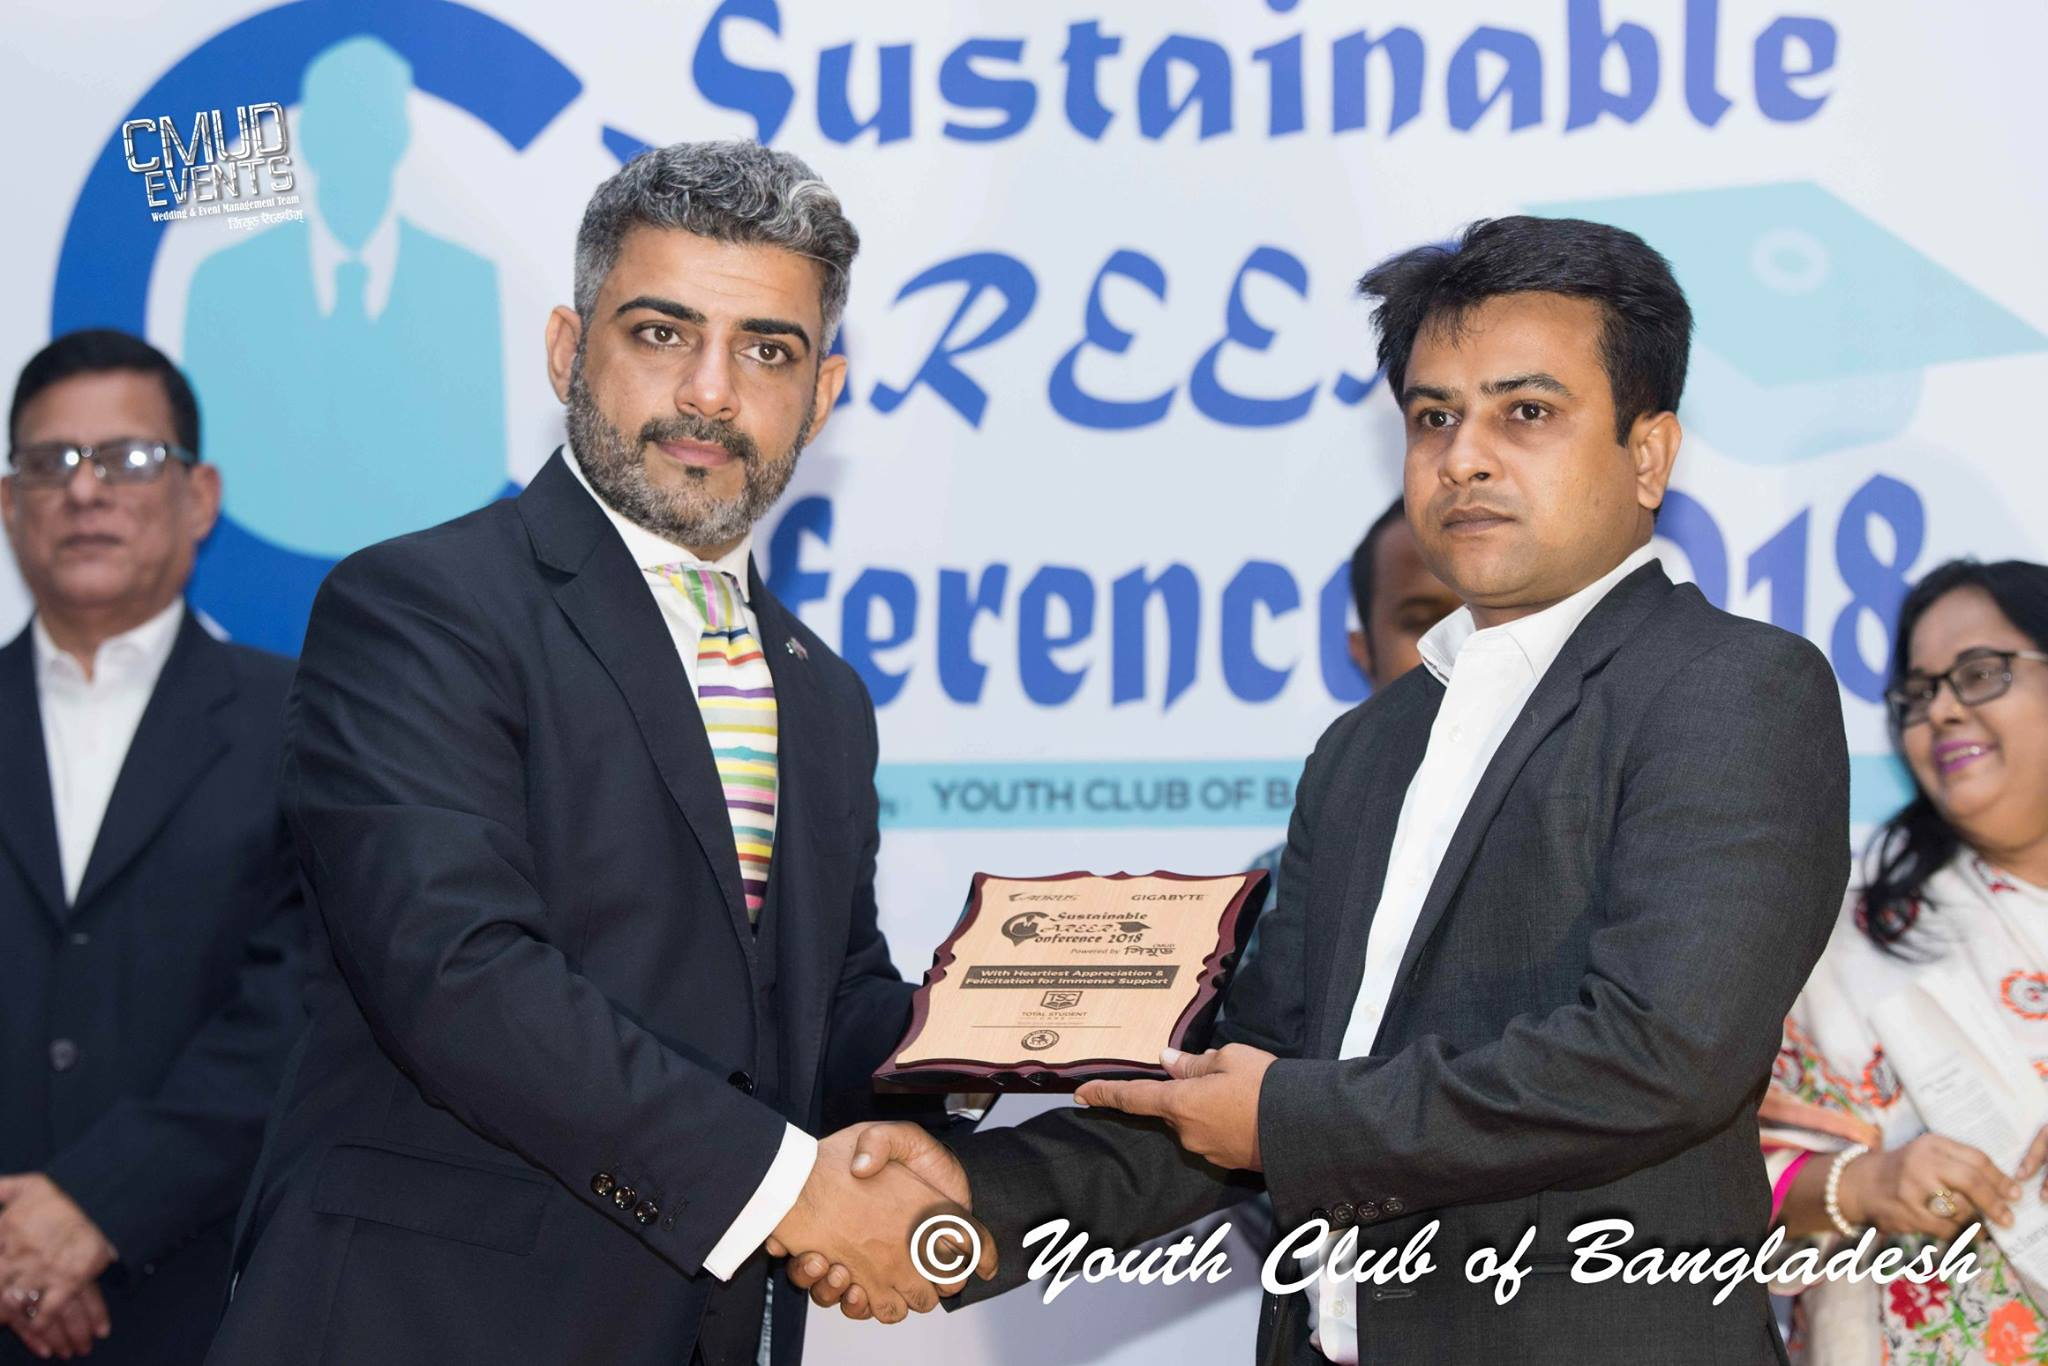 Youth Club Bangladesh, Sustainable Career Conference (01/09/2018) - Md Obayedullah Khan, Director of Operations of Total Student Care (TSC) with Kanbar Hossein Bor, British Deputy High Commissioner to Bangladesh